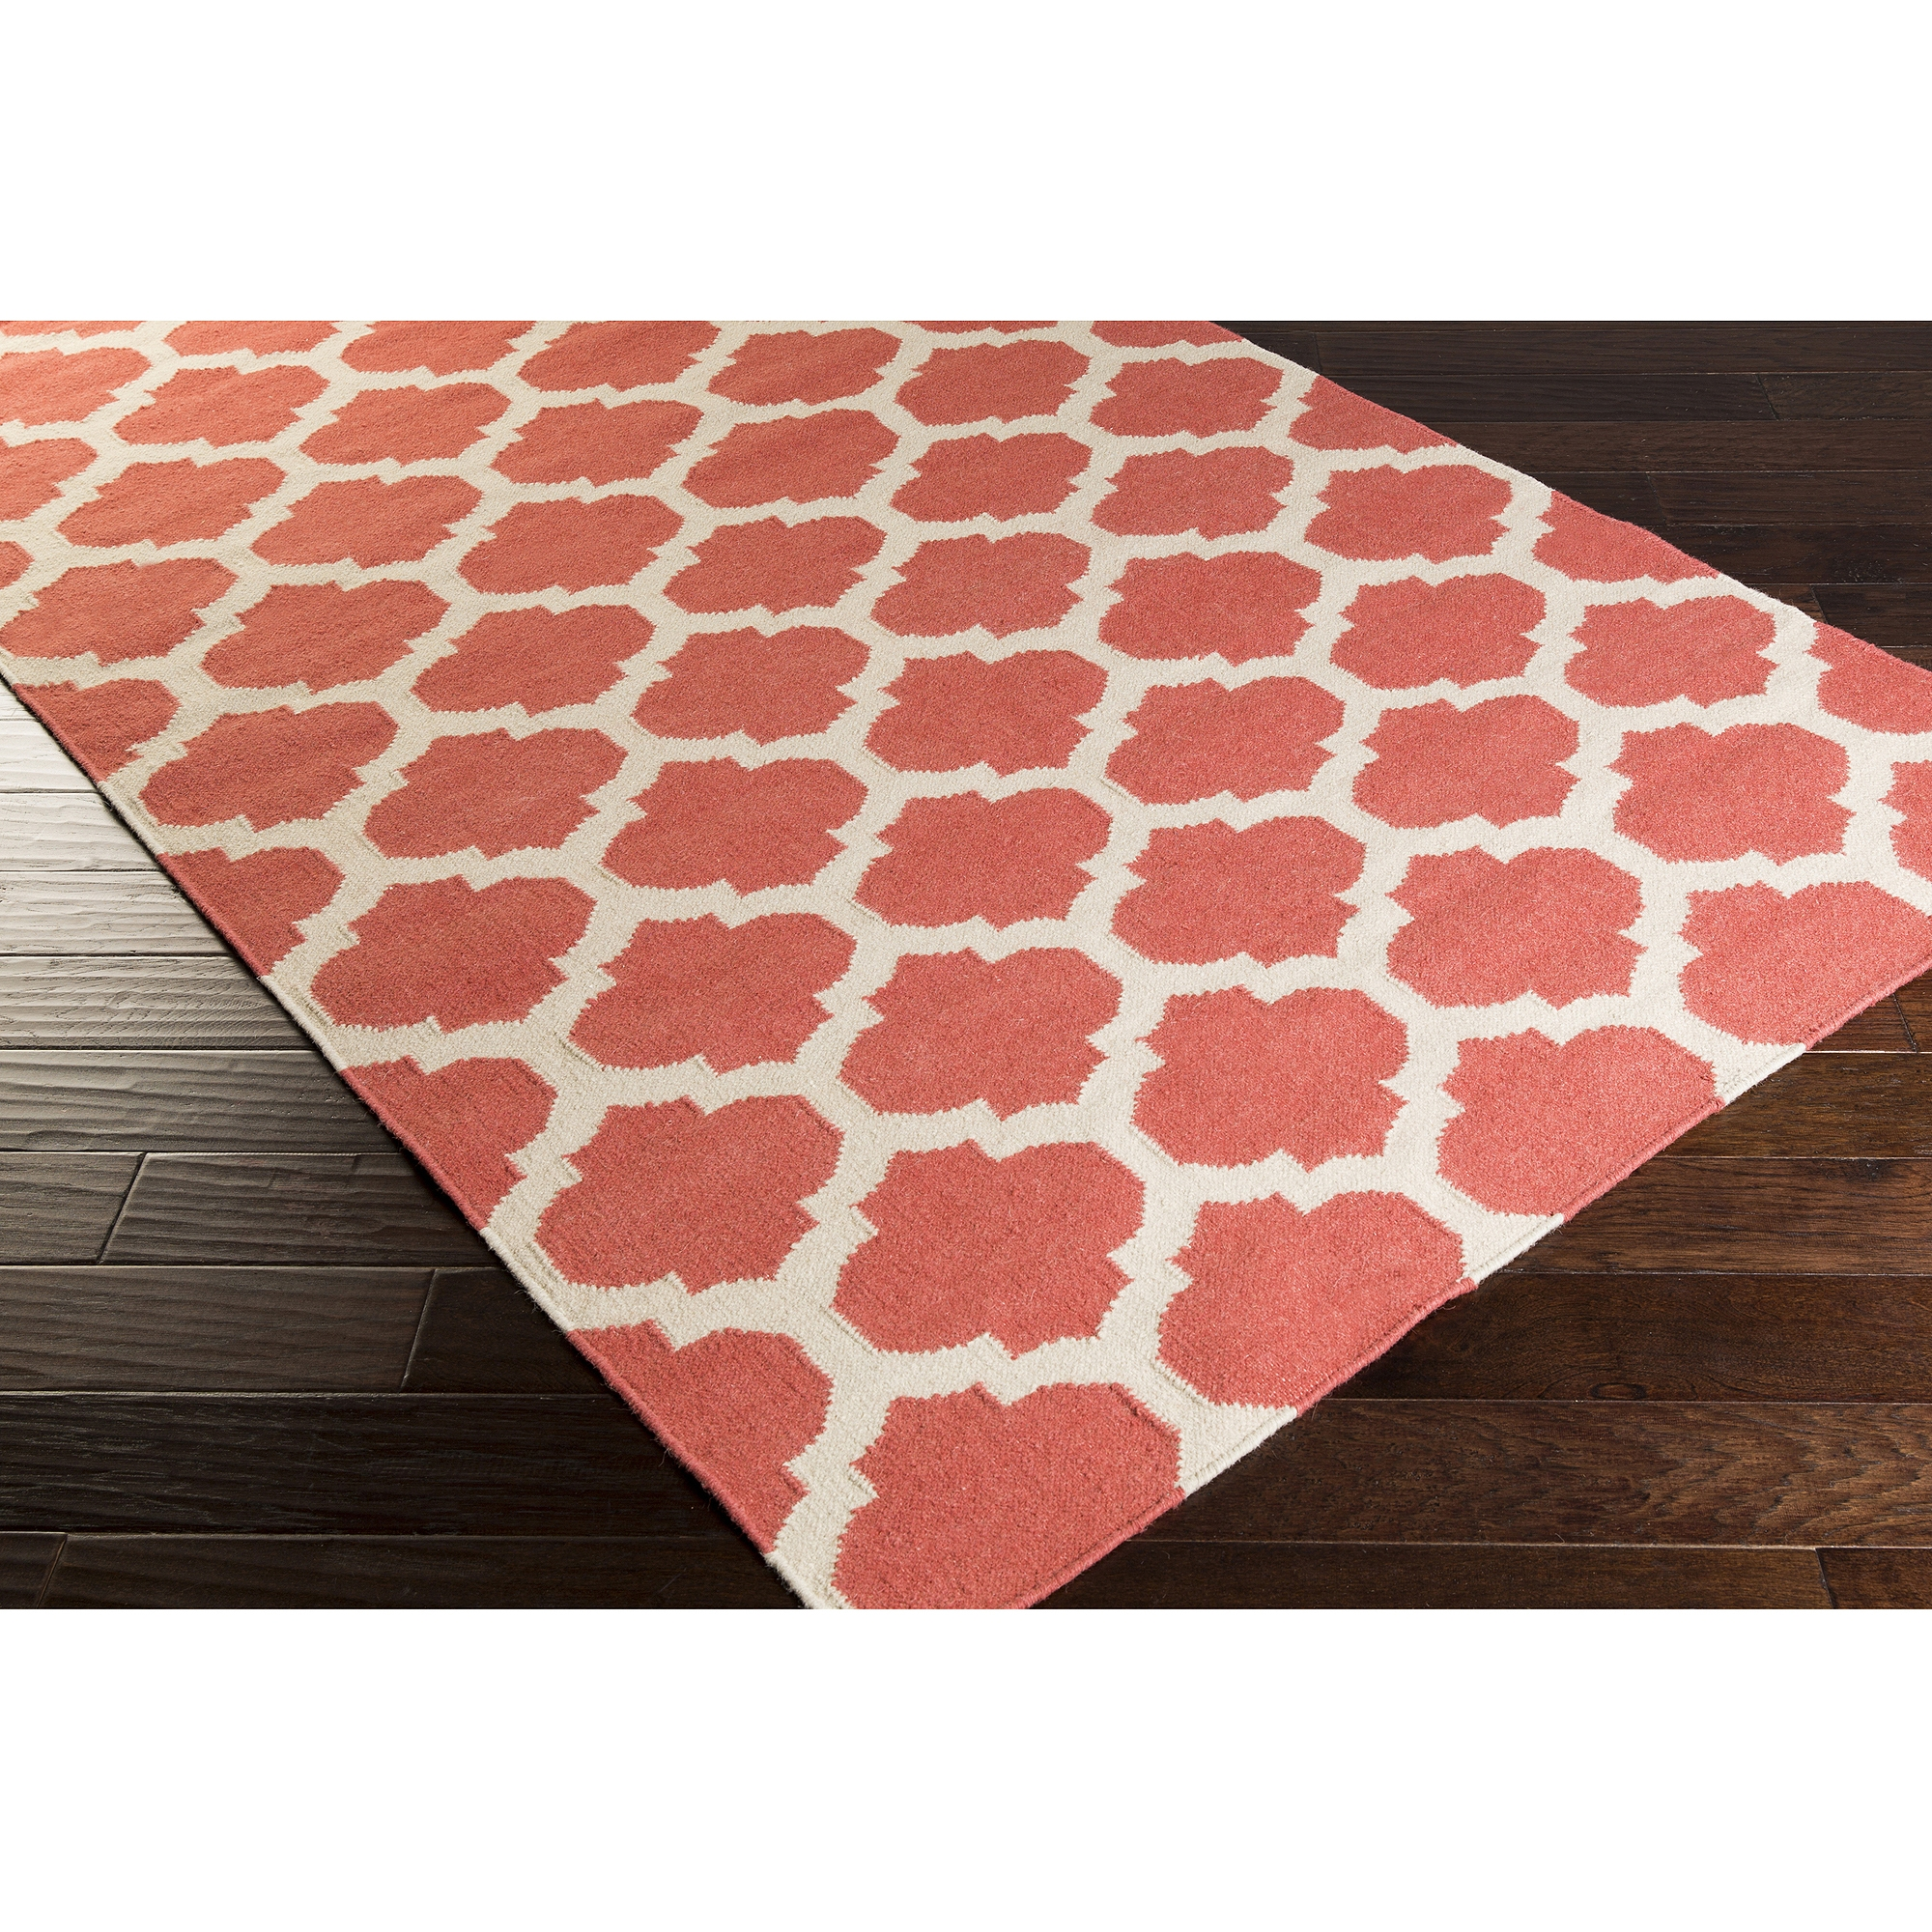 Large Wool Area Rugs Roselawnlutheran Pertaining To 4 7 Of